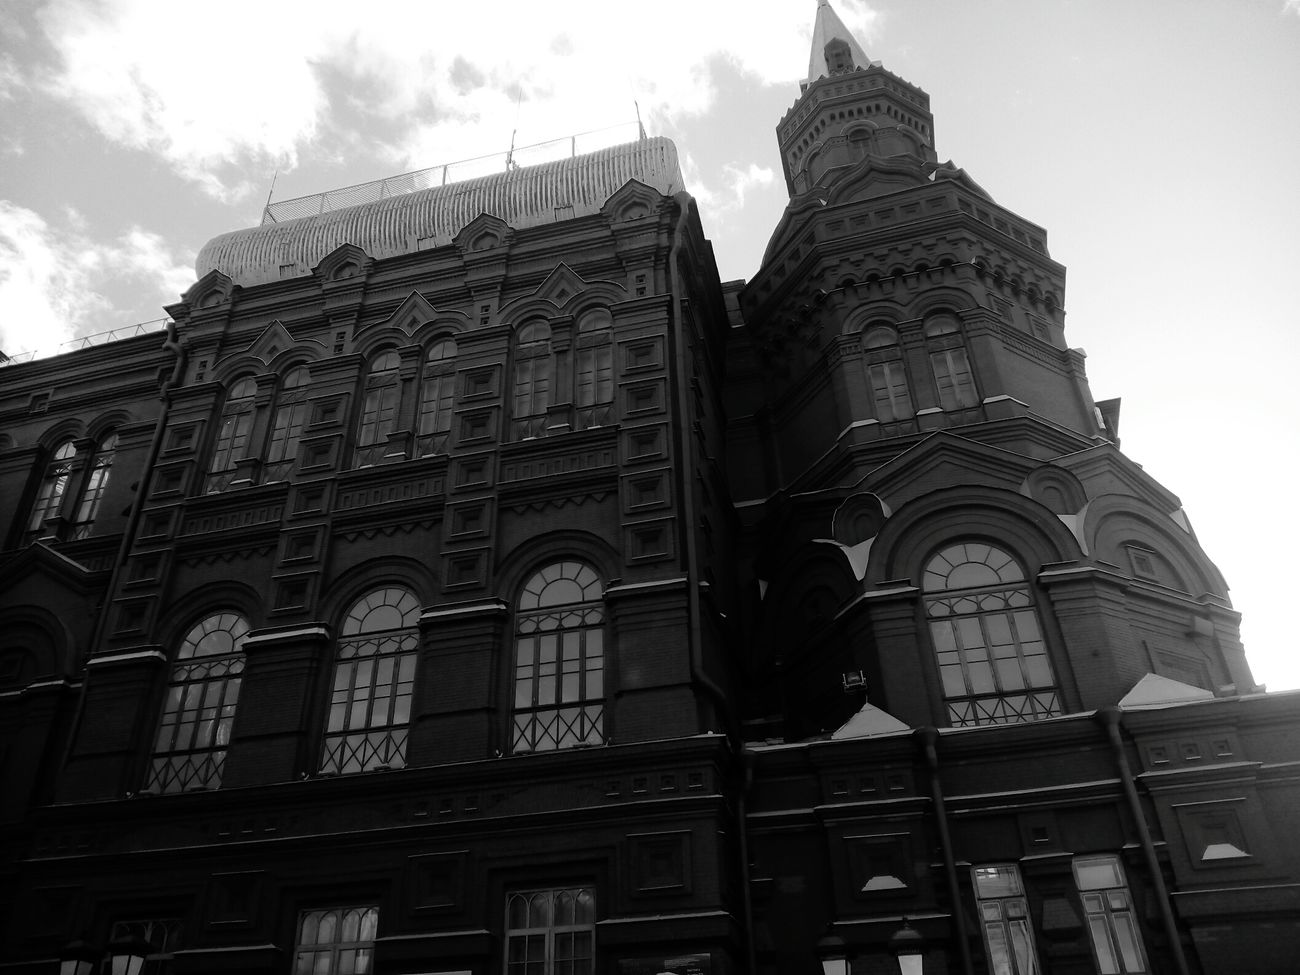 Architecture Sky Built Structure Red Low Angle View Building Exterior History No People Cloud - Sky Travel Destinations Outdoors Day City Cultures Moscow